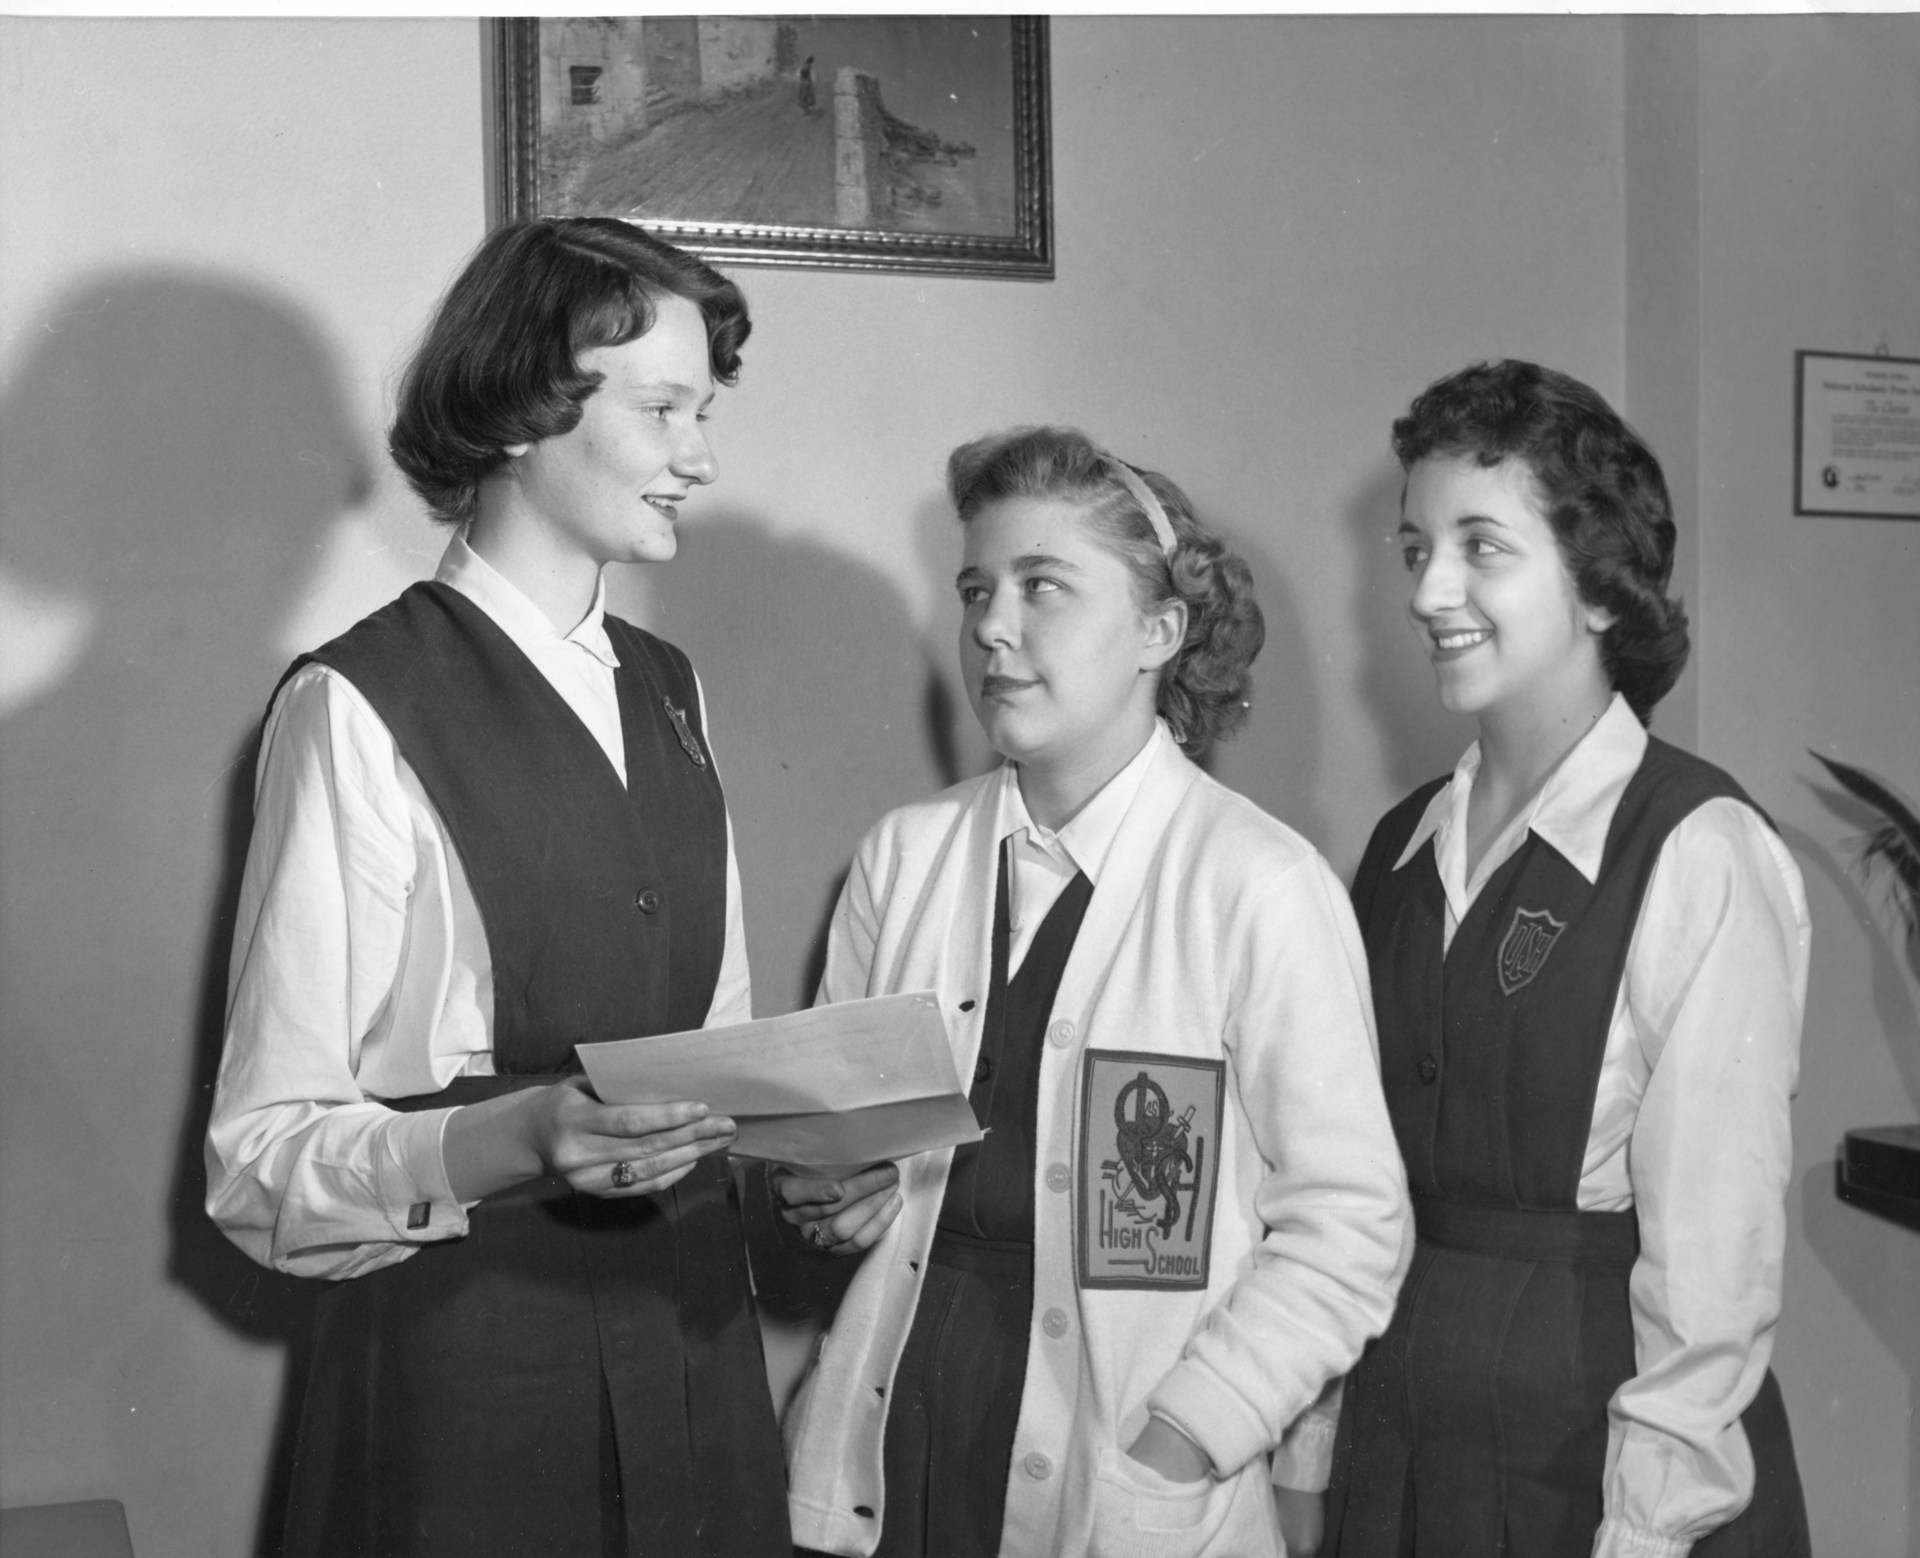 Three young women in the 1950s wearing the OLSH uniform of the time.